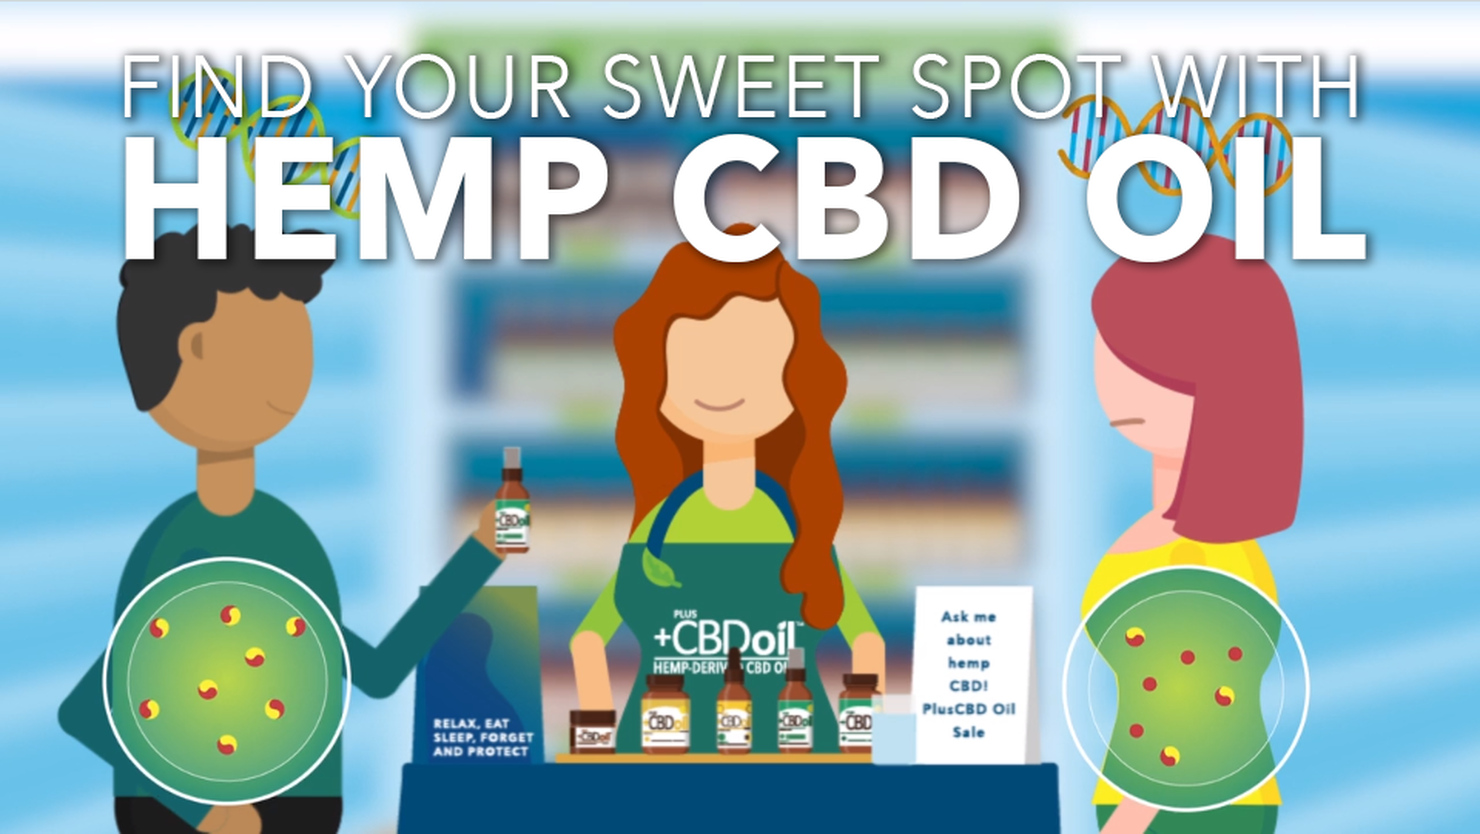 Find Your Sweet Spot with Hemp CBD Oil